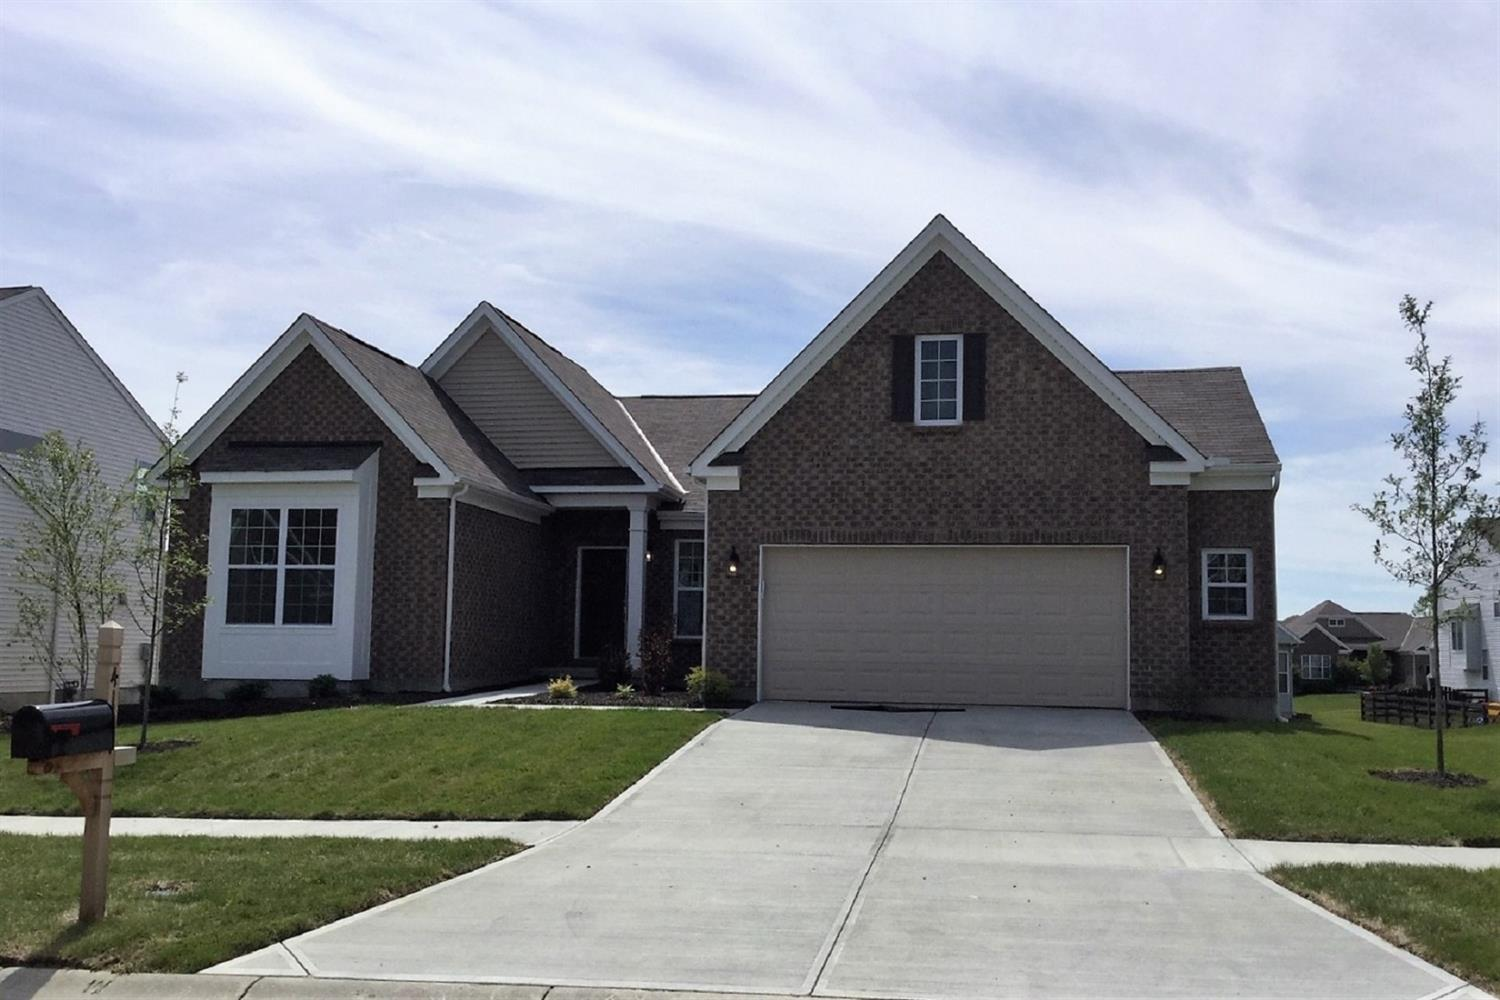 Property for sale at 4124 Bluestem Drive Unit: 322, Turtle Creek Twp,  Ohio 45036